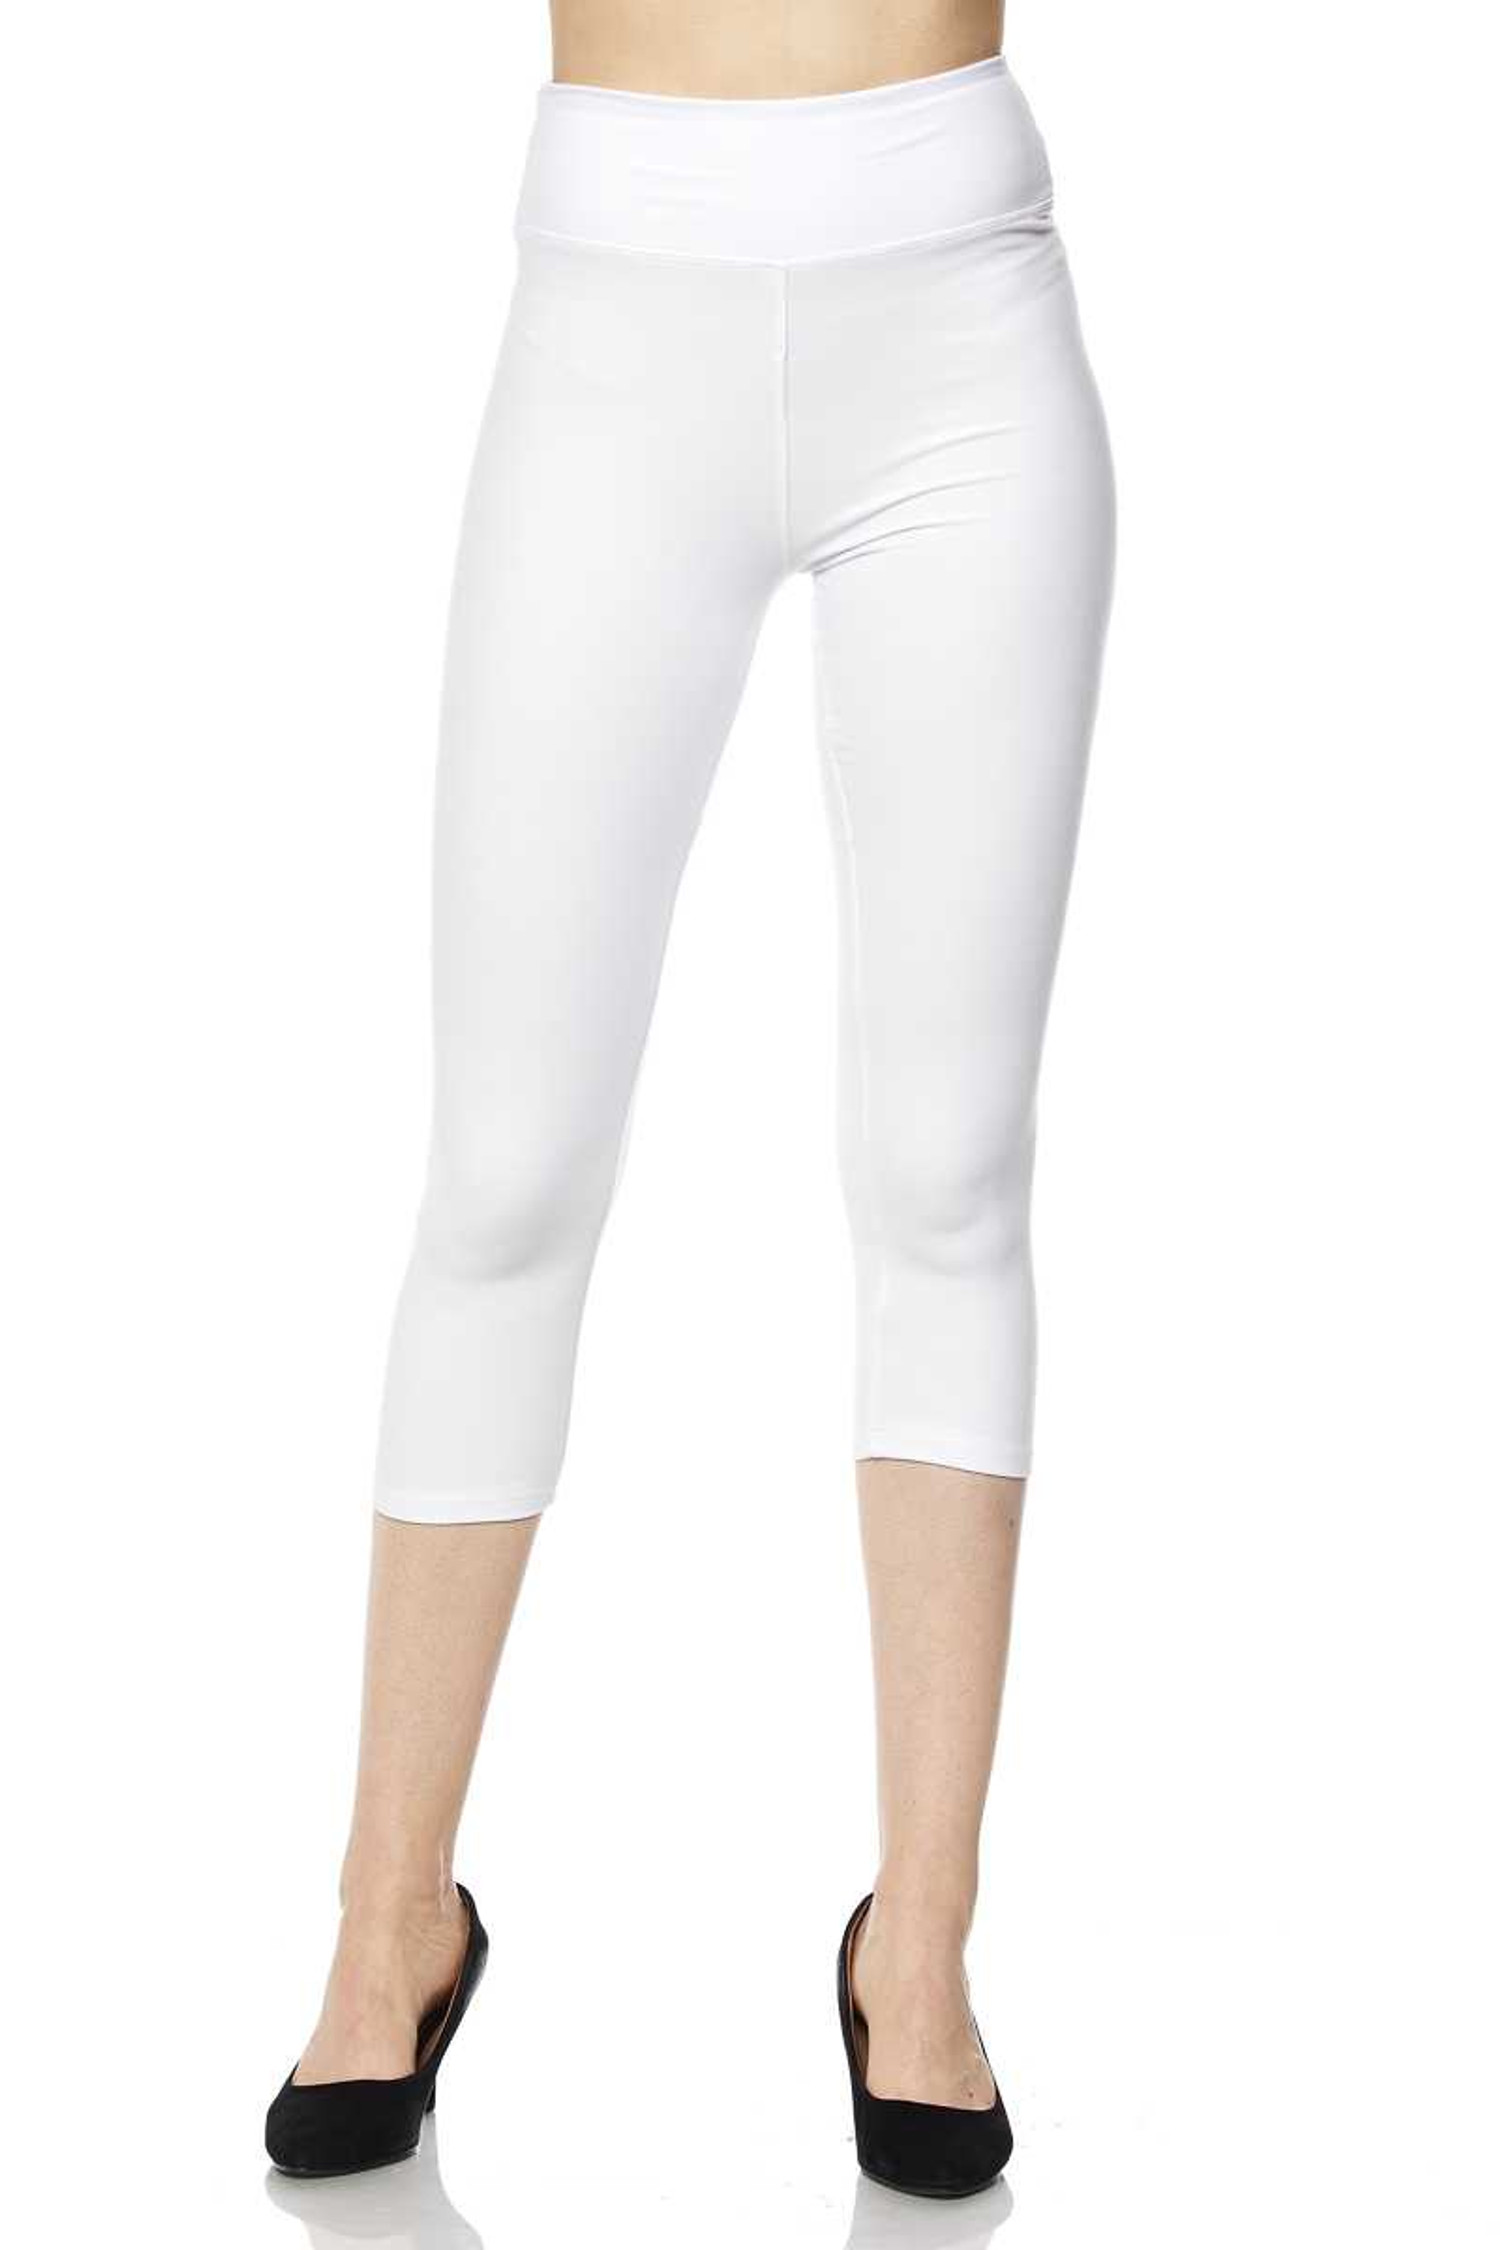 Brushed  High Waisted Basic Solid Capri - 3 Inch Waist